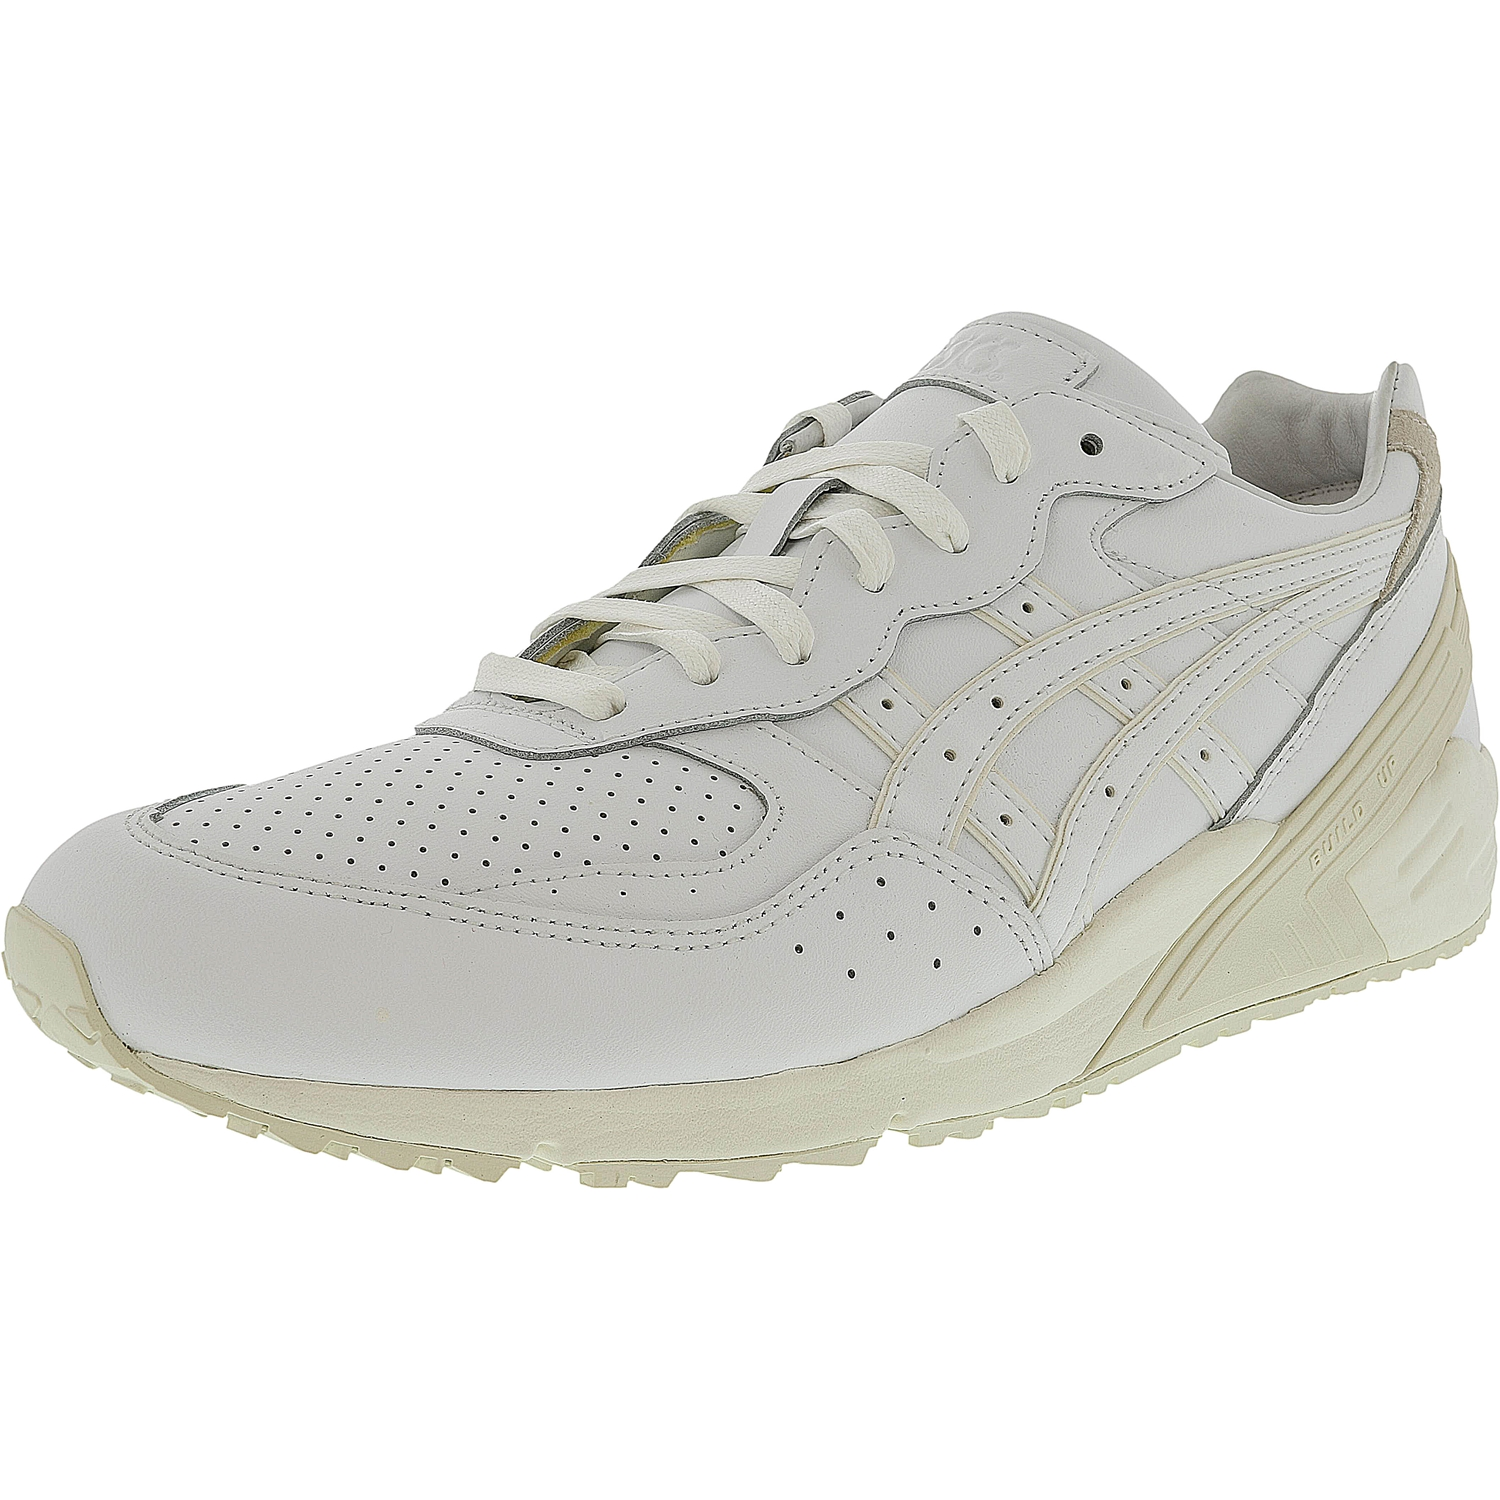 Asics Gel-Sight White   Ankle-High Leather Tennis Shoe 10M 8.5M by Asics